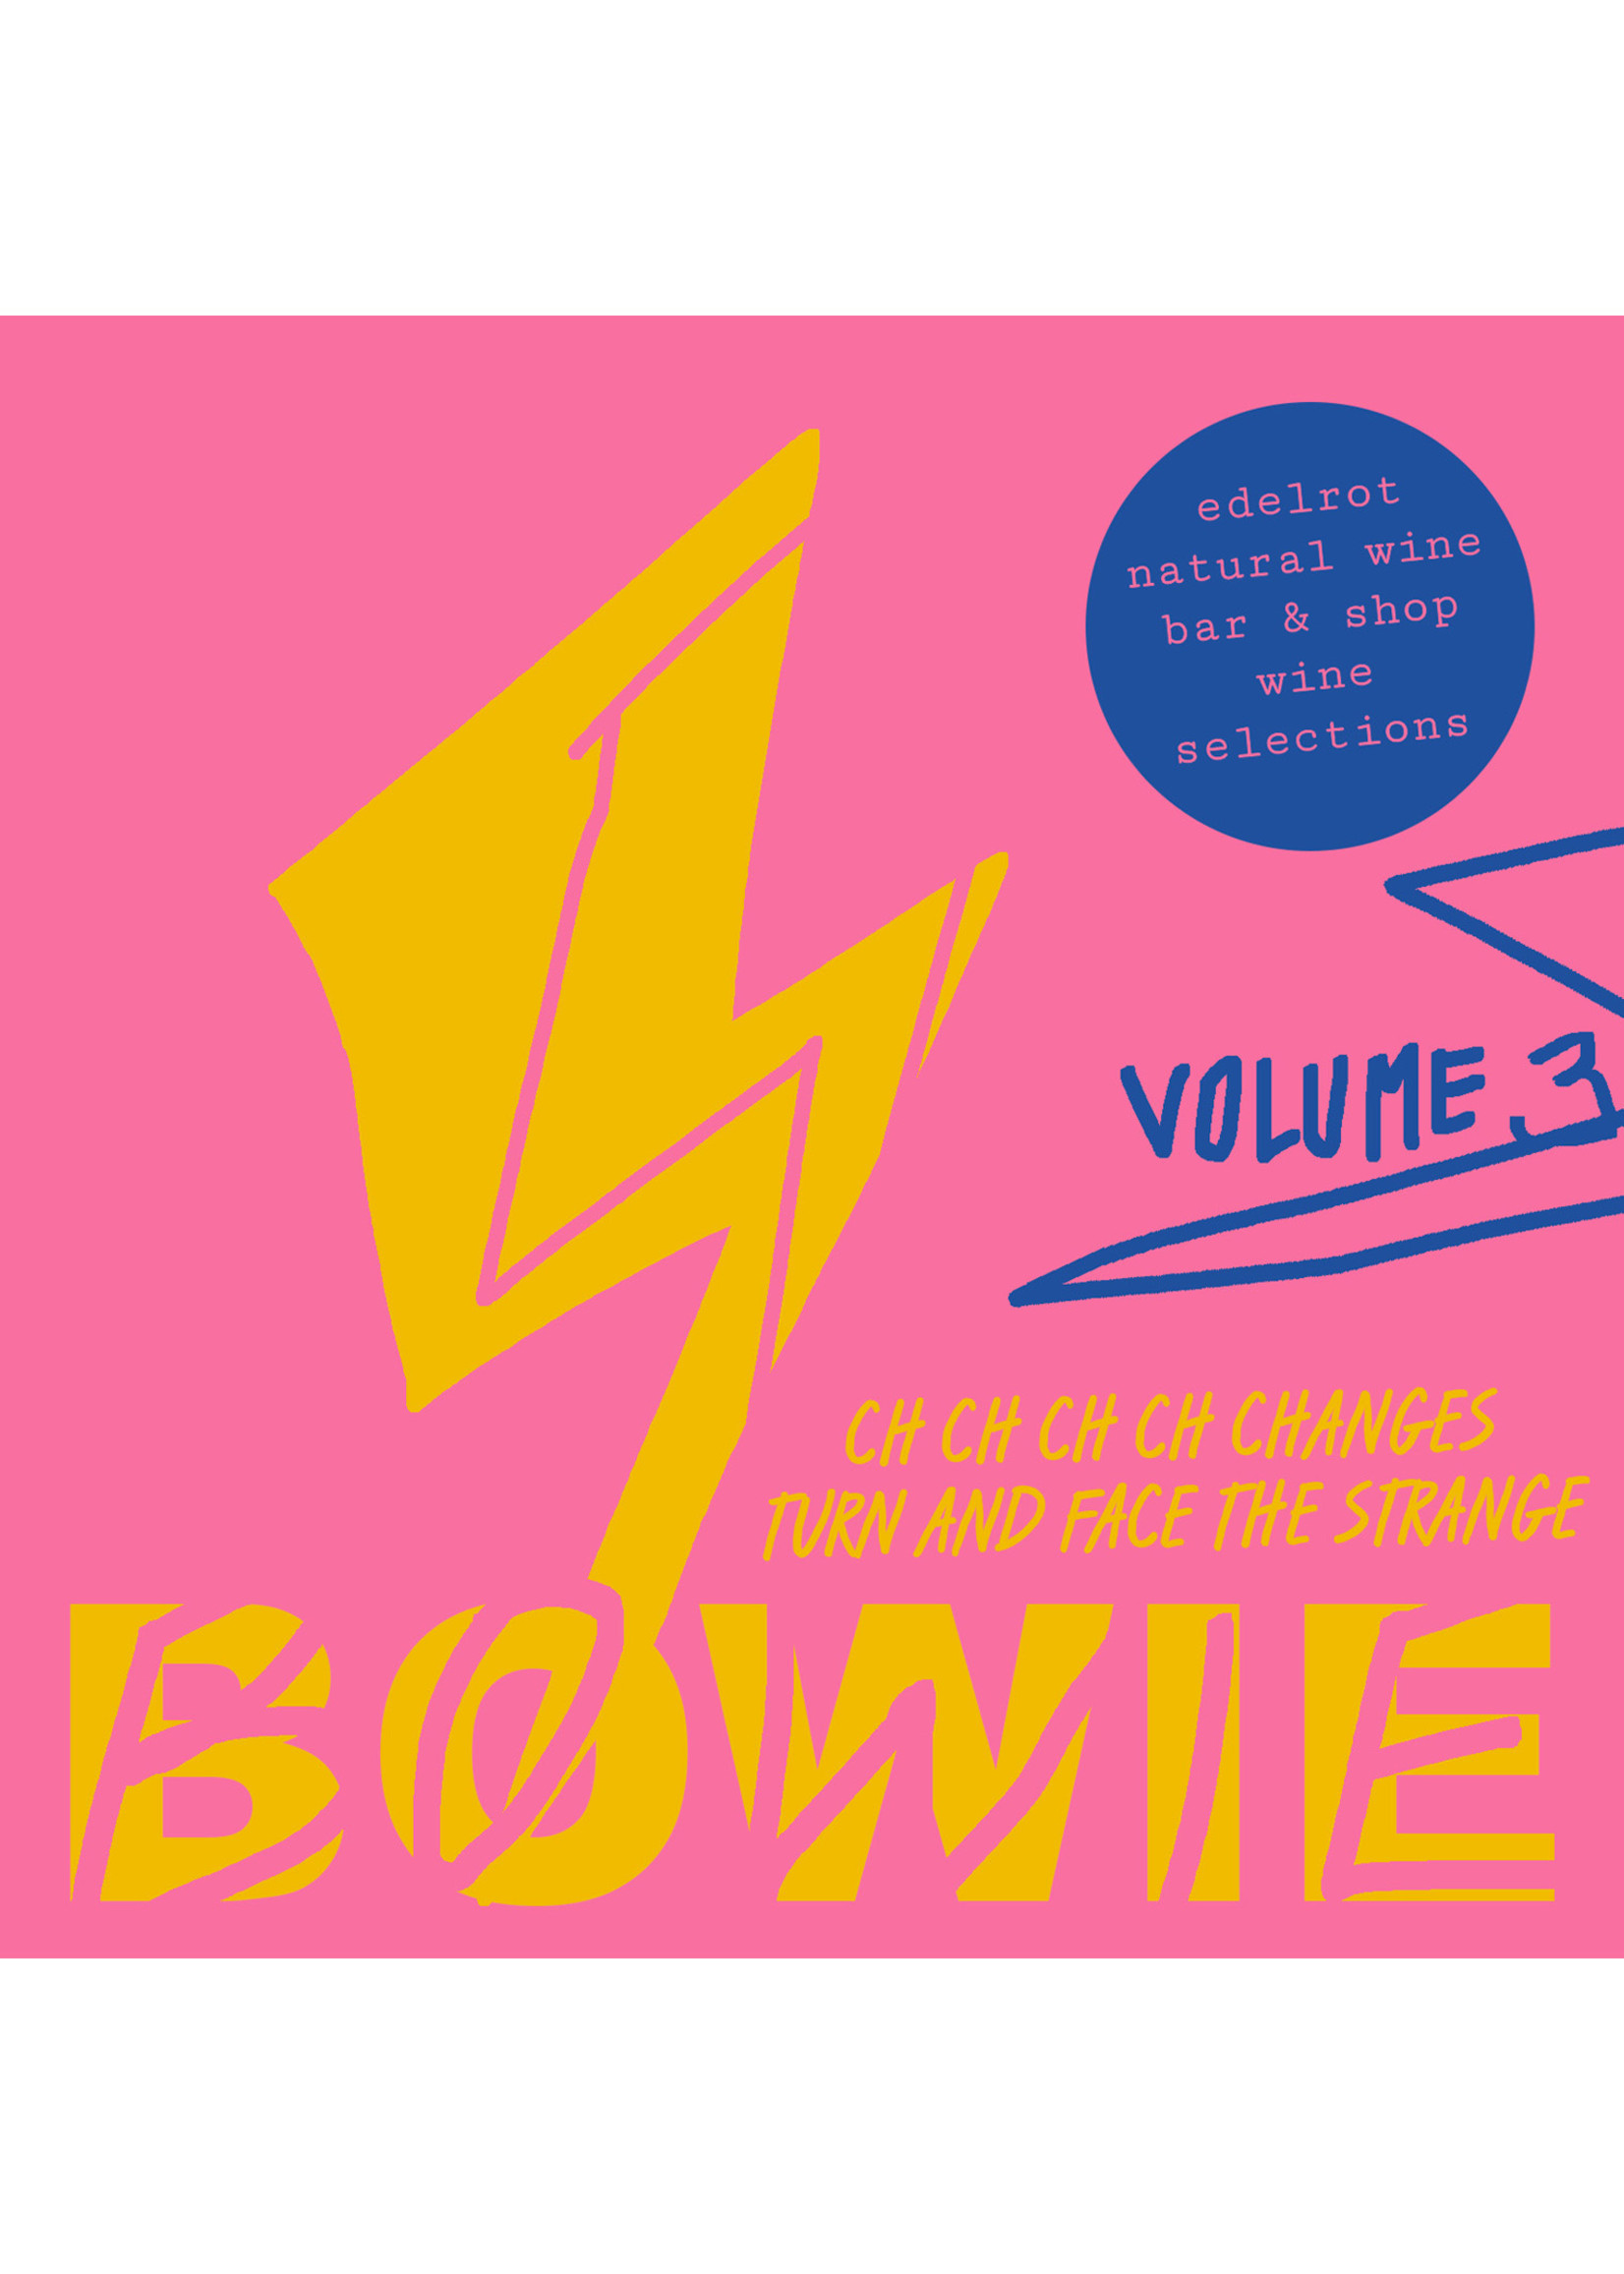 edelrot natural wine selections BOWIE - Volume 3 - wijnselectie